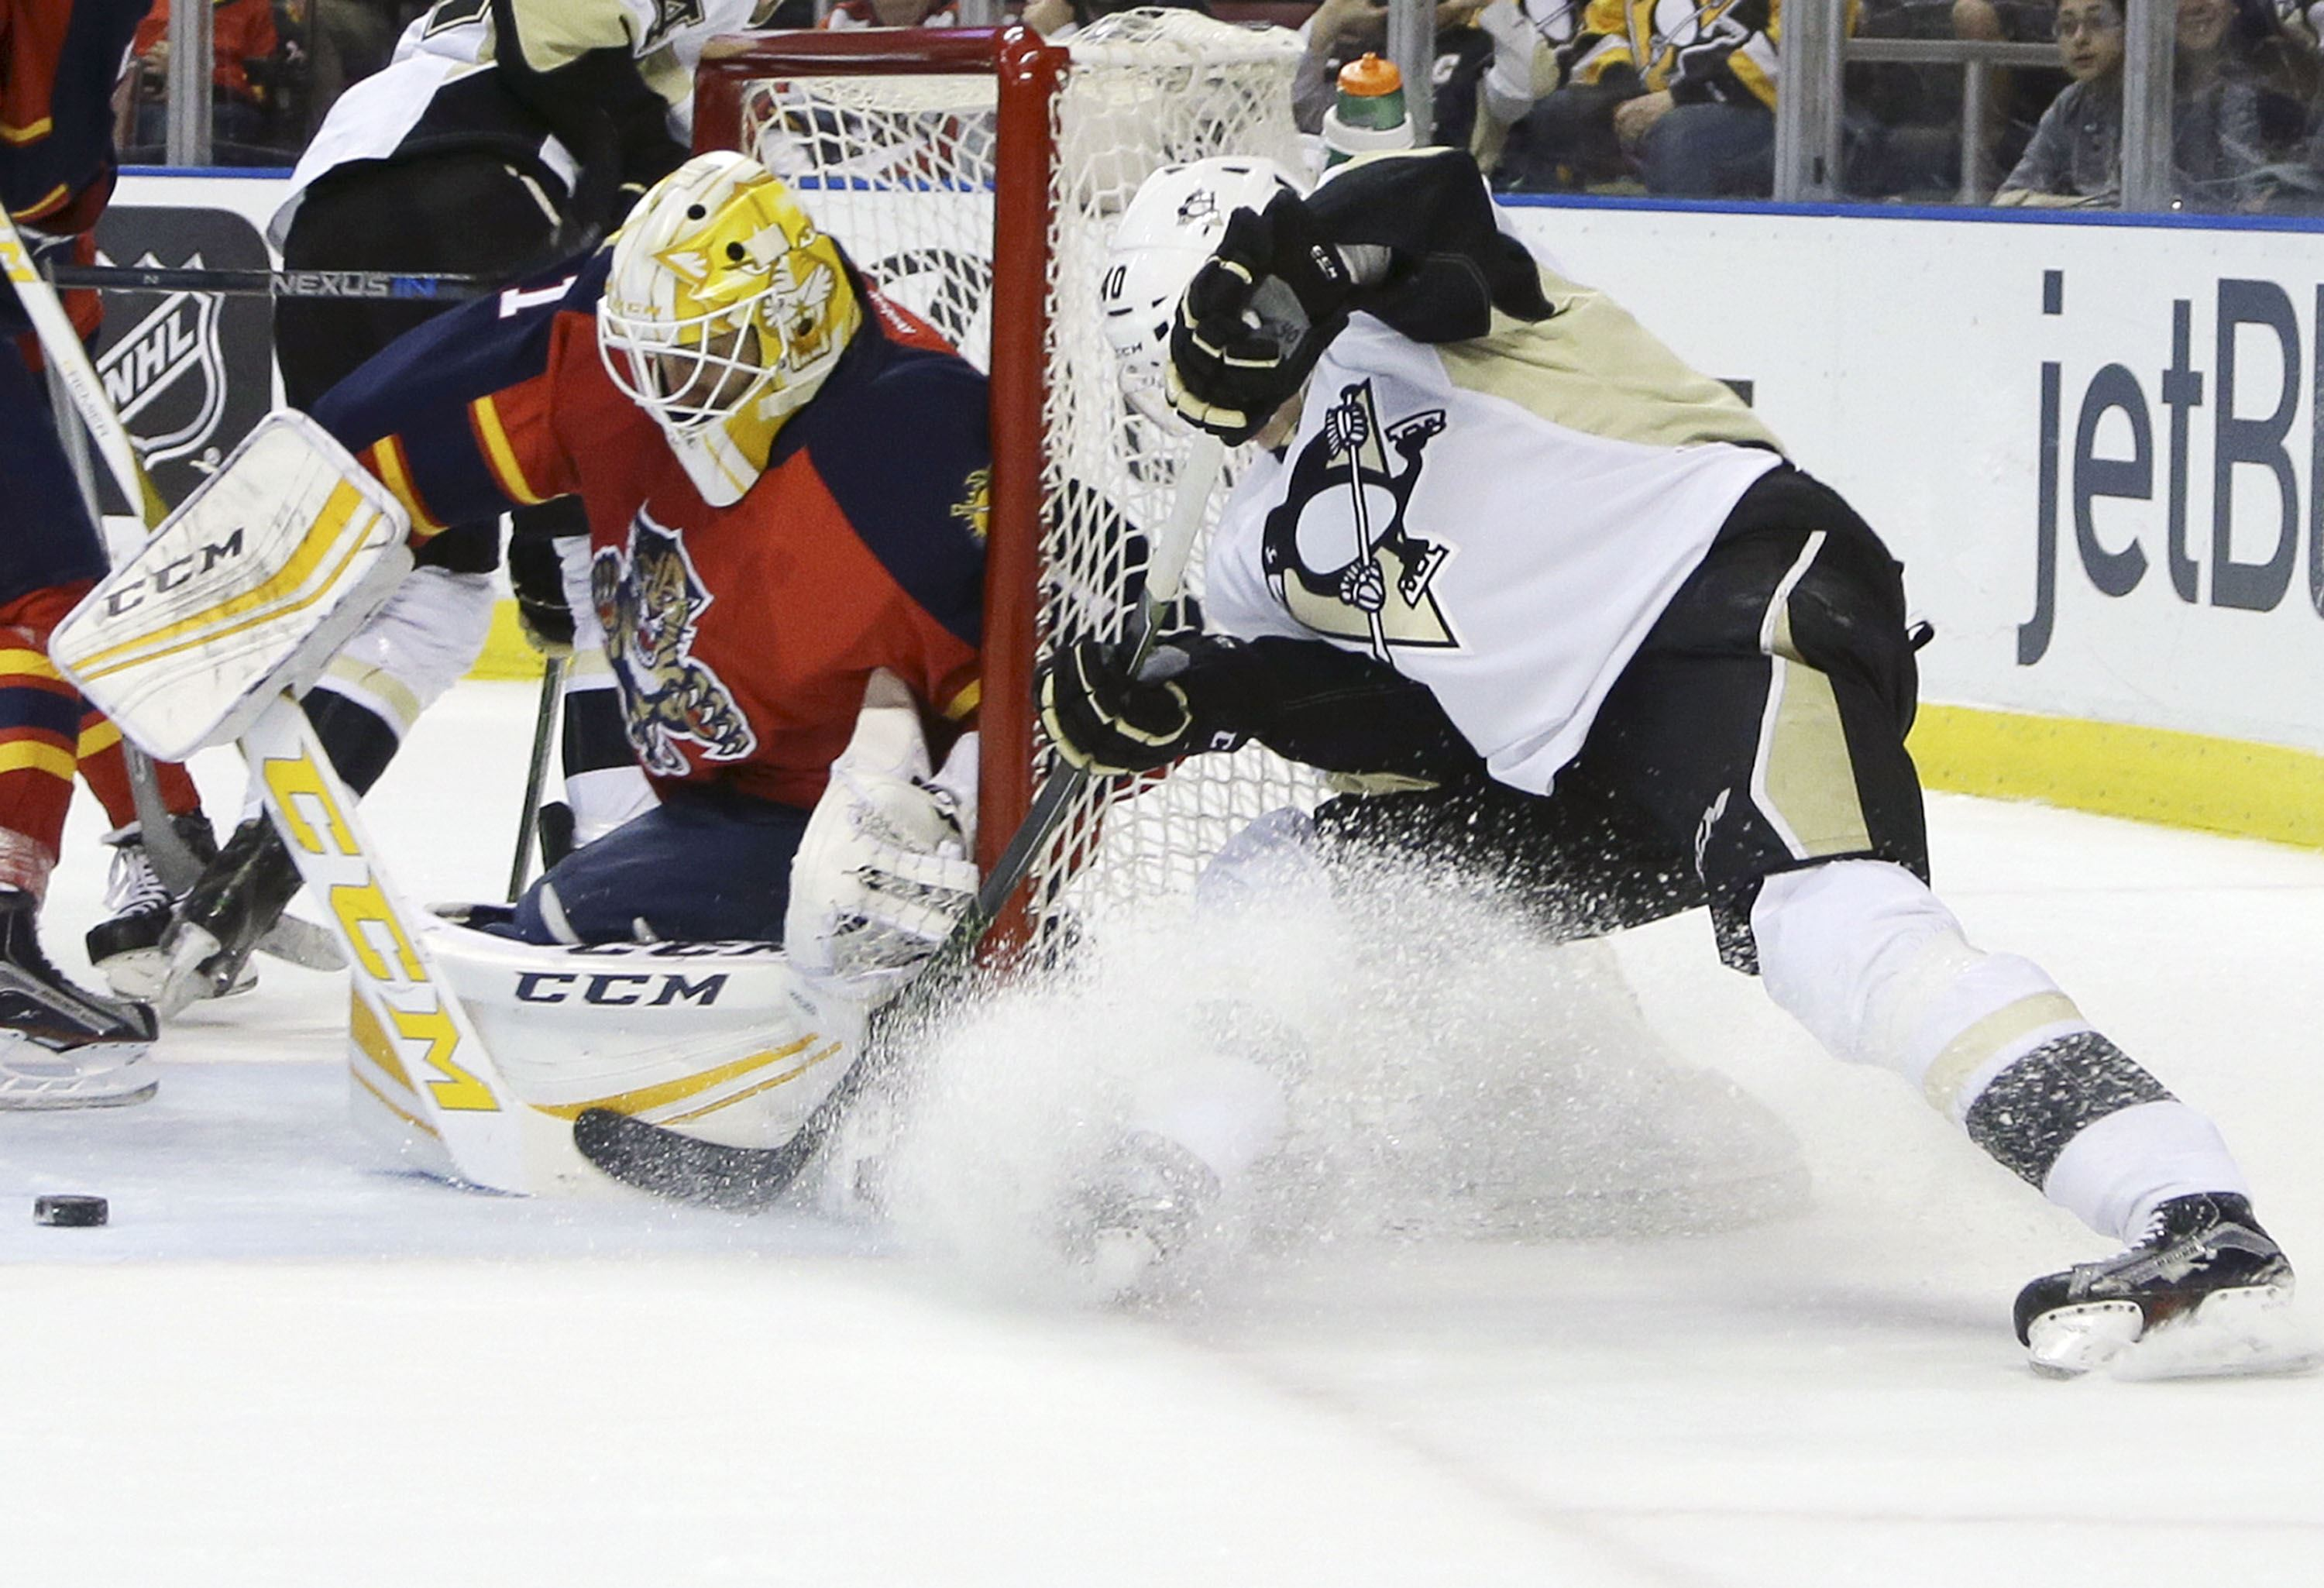 Penguins take down Panthers in OT, 3-2